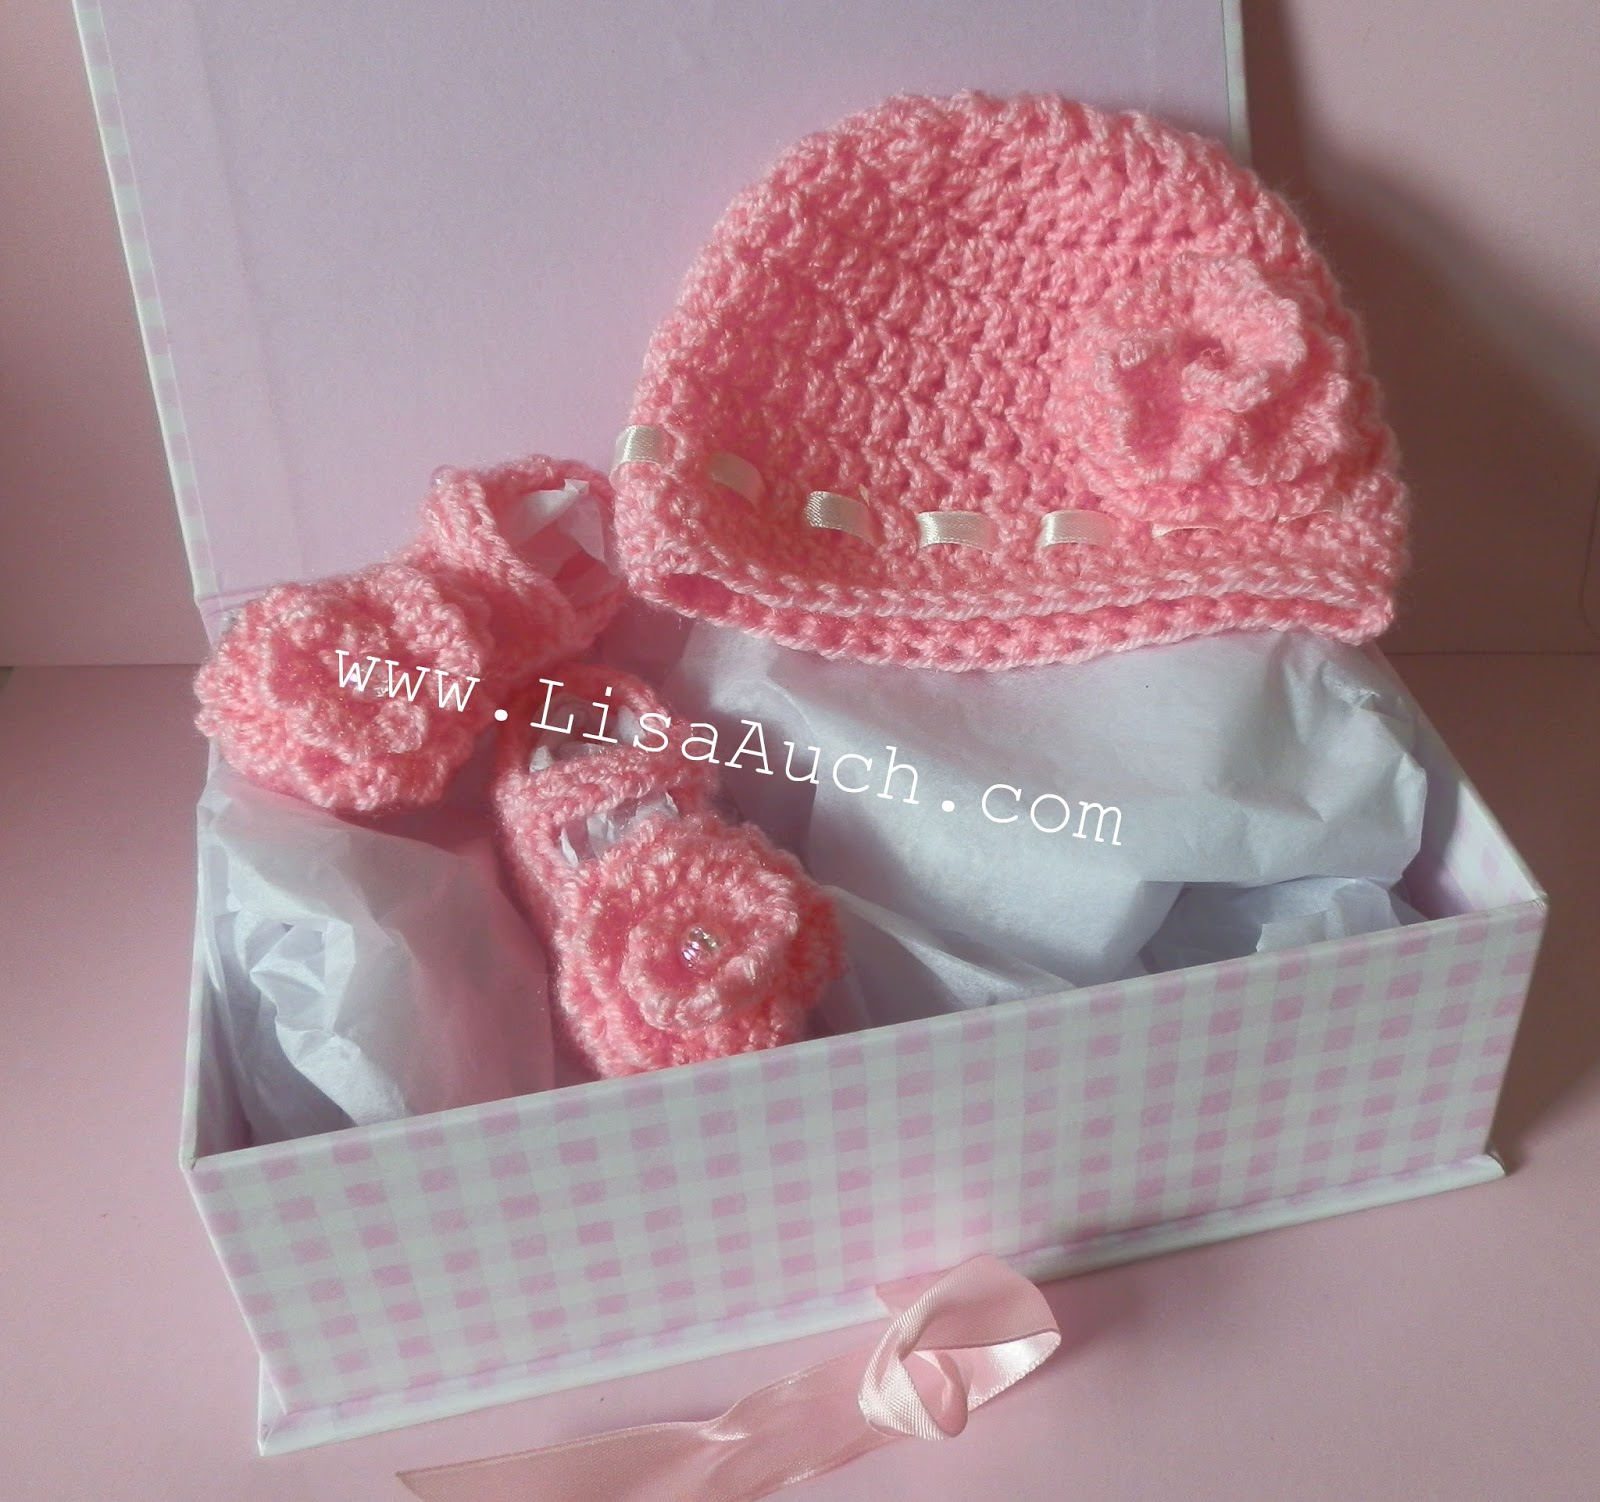 Free Crochet Pattern For Infant Hat : FREE CROCHET BABY BUNTING SET PATTERN - Crochet and ...